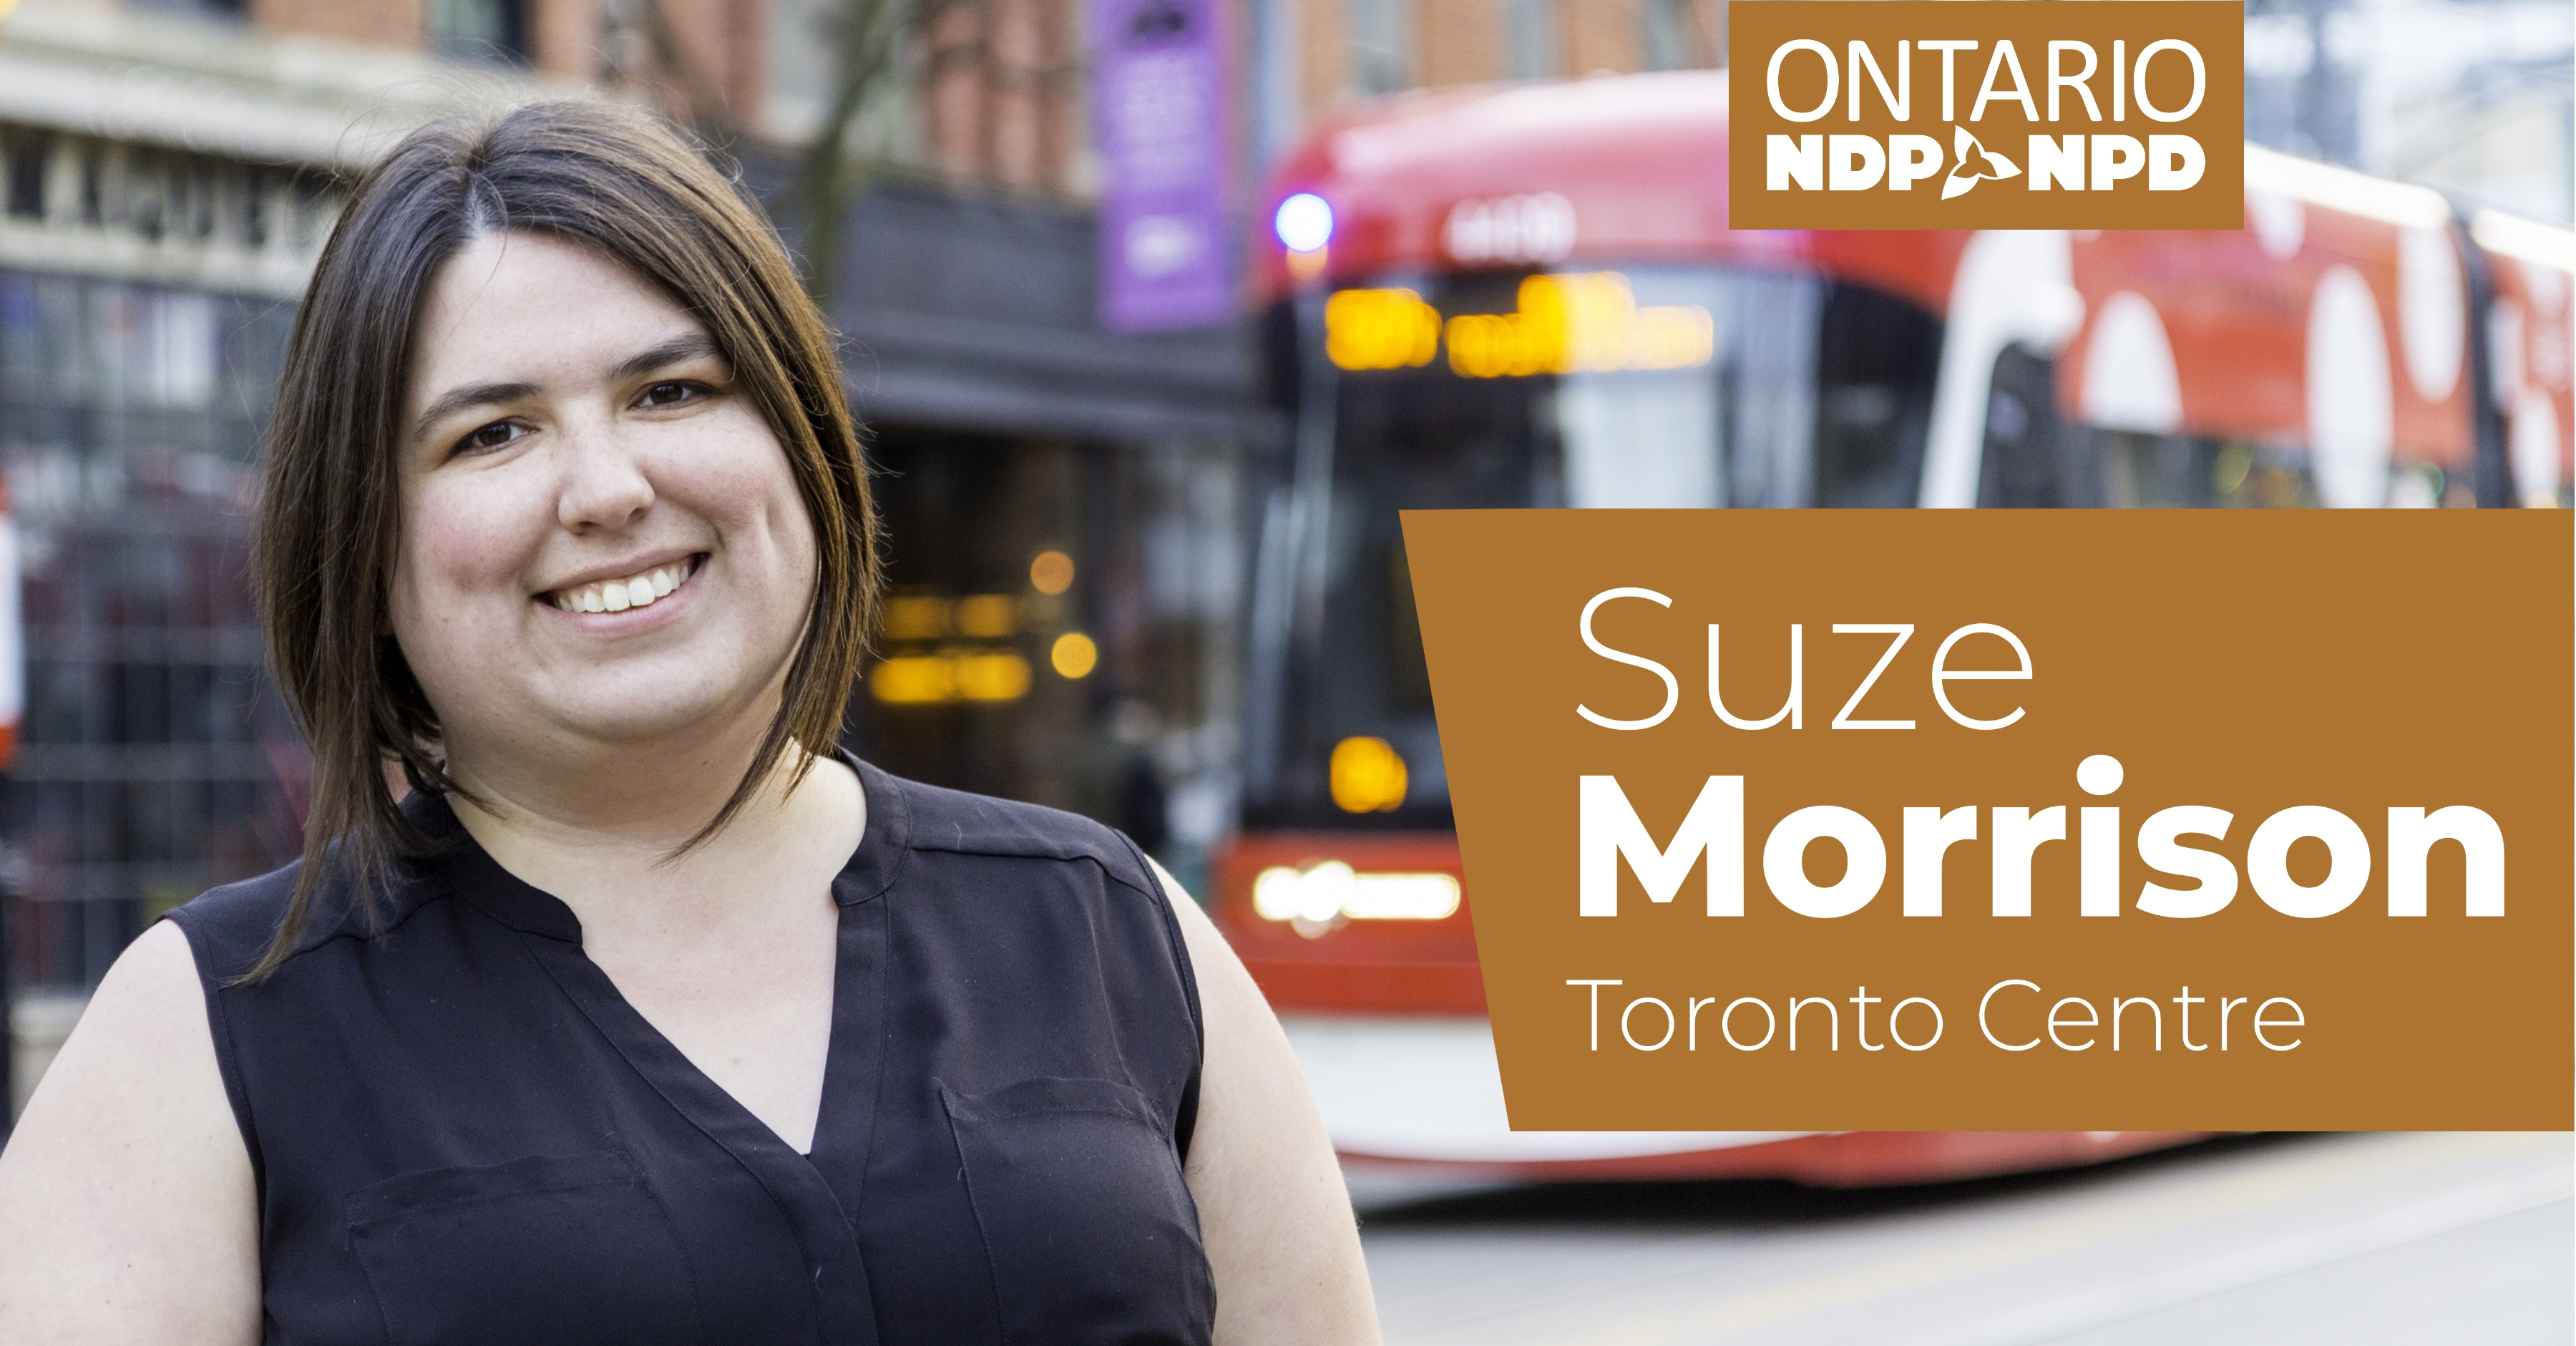 Suze Morrison: NDP Toronto Central Riding